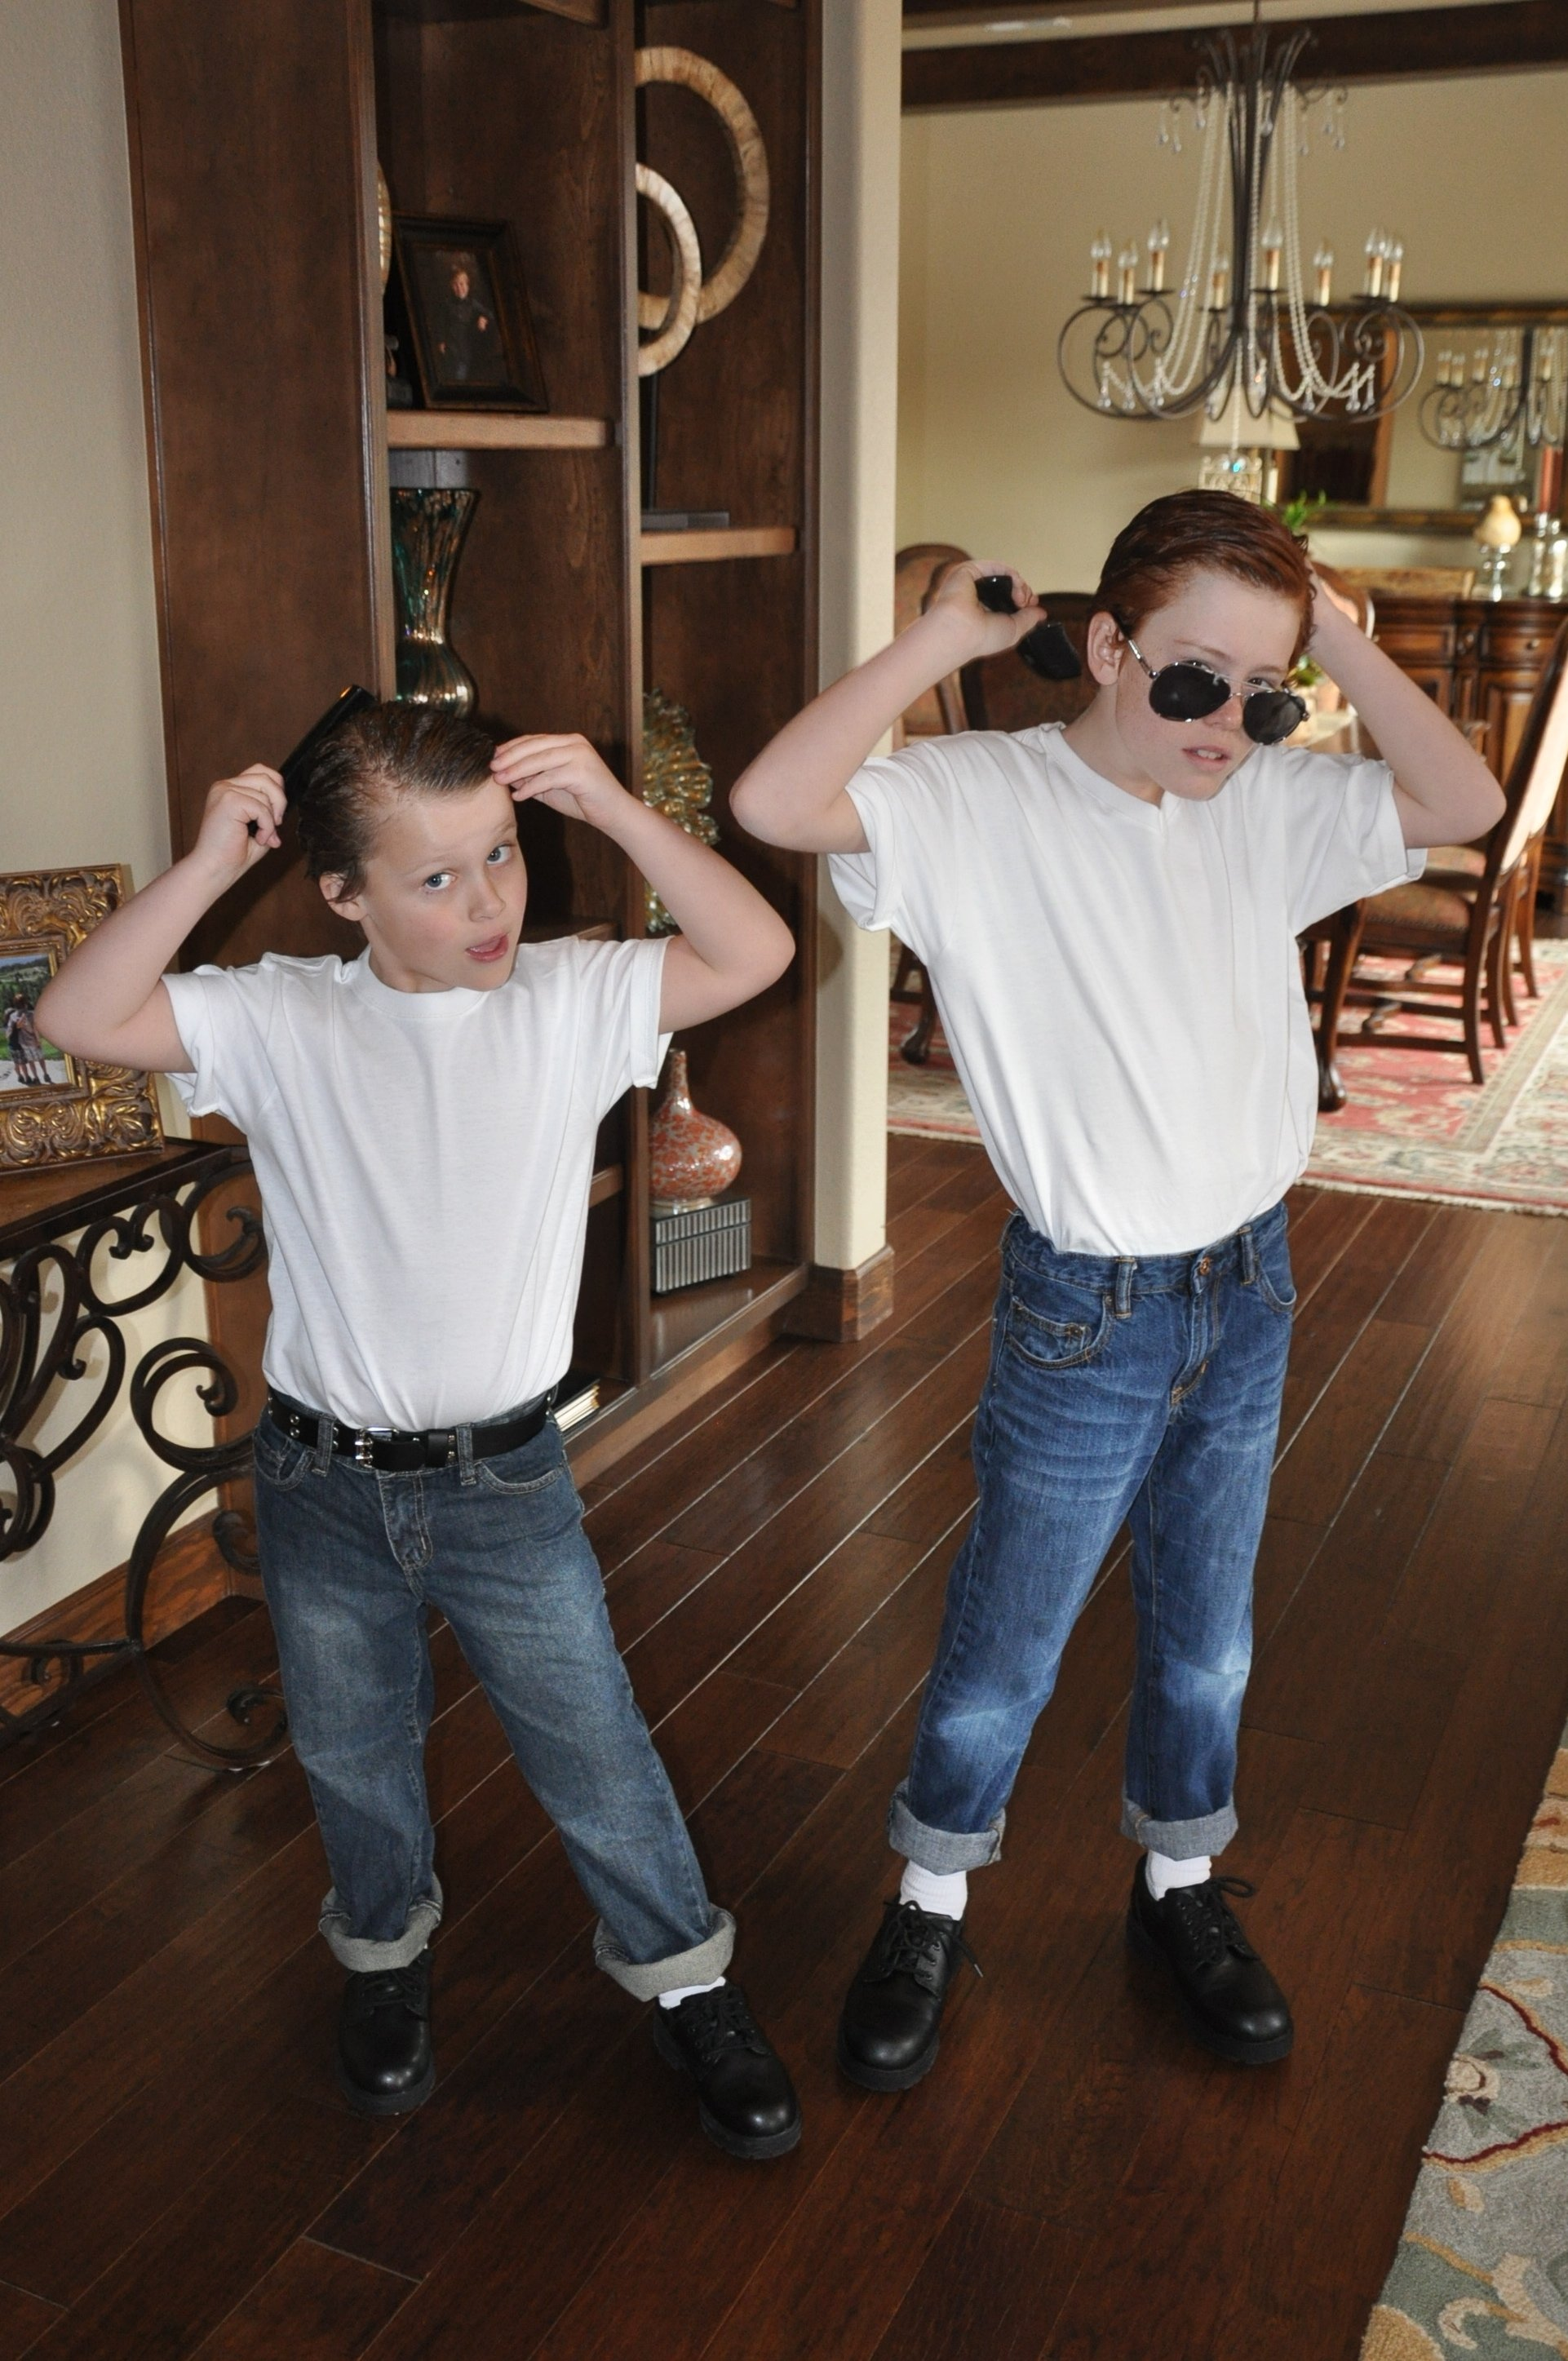 simple sock hop attire - it's all in the attitude! | custom costumes